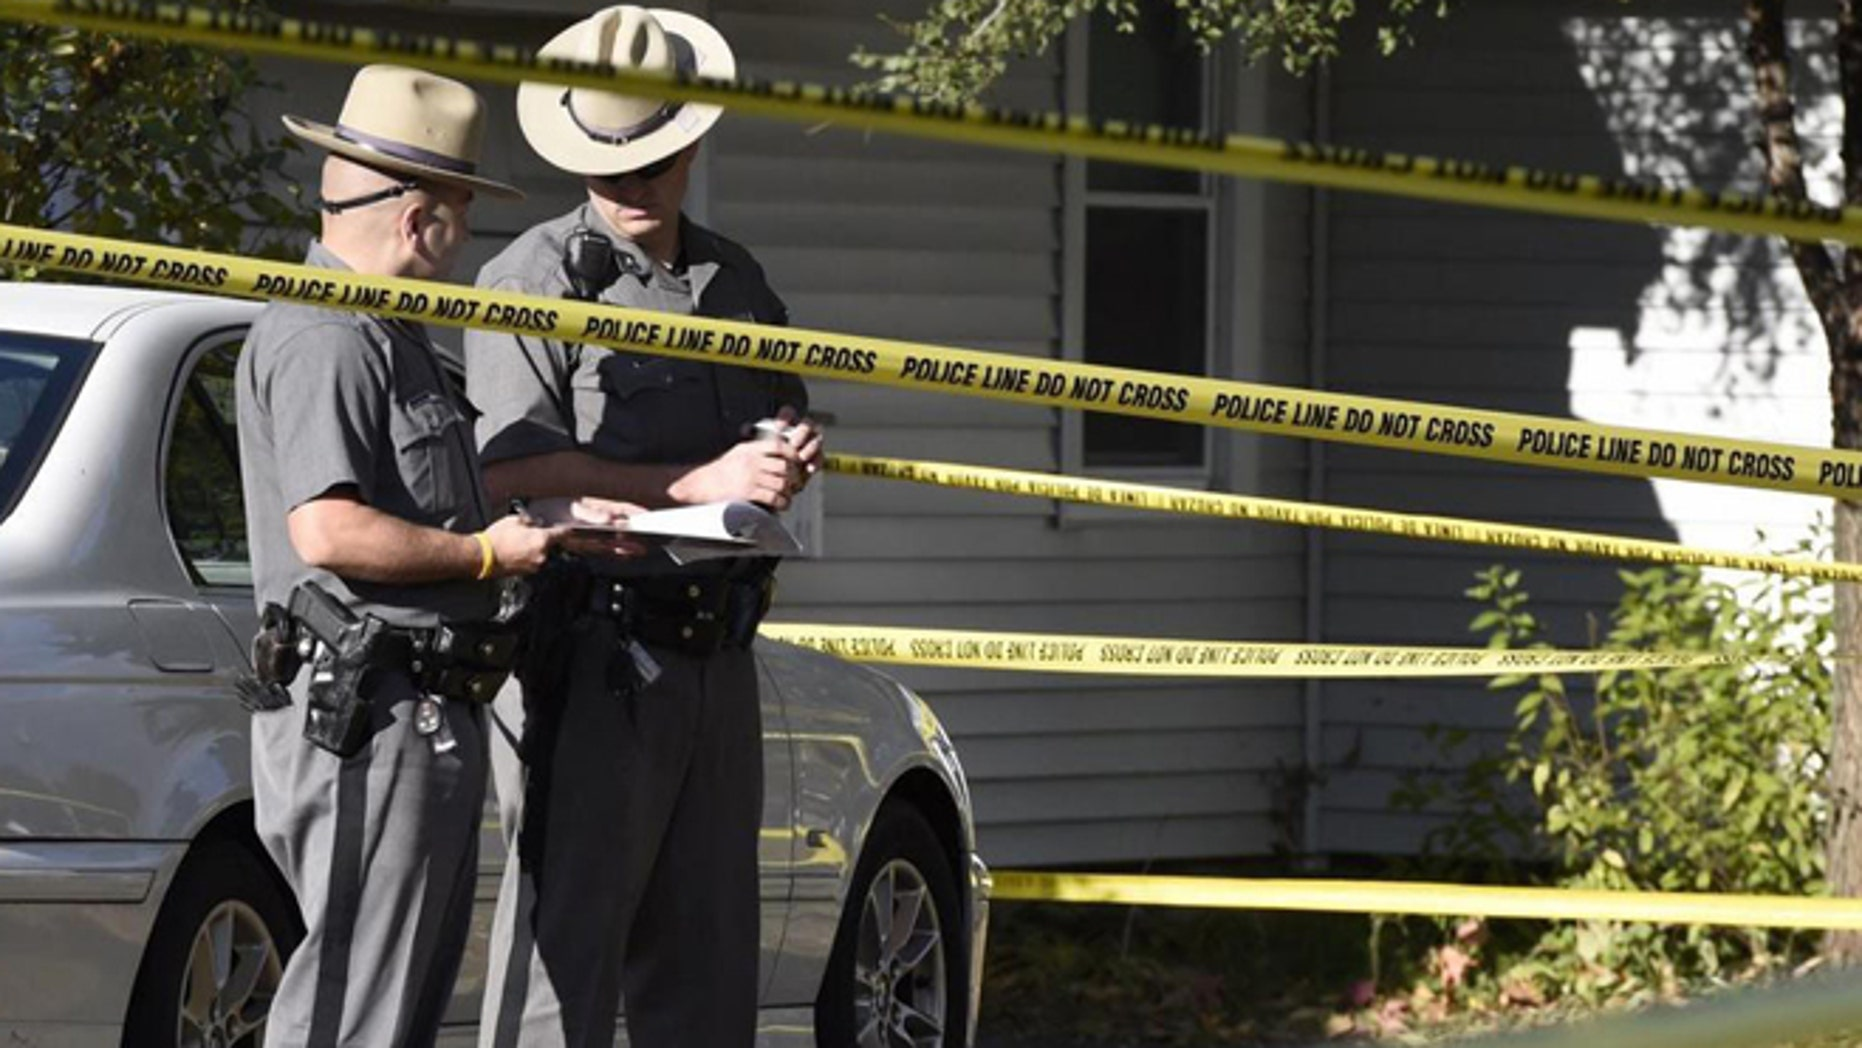 Oct. 10, 2014: Authorities work the scene of a quadruple homicide in Guilderland, N.Y., where Jin Chen, his wife and their two children were found fatally stabbed.